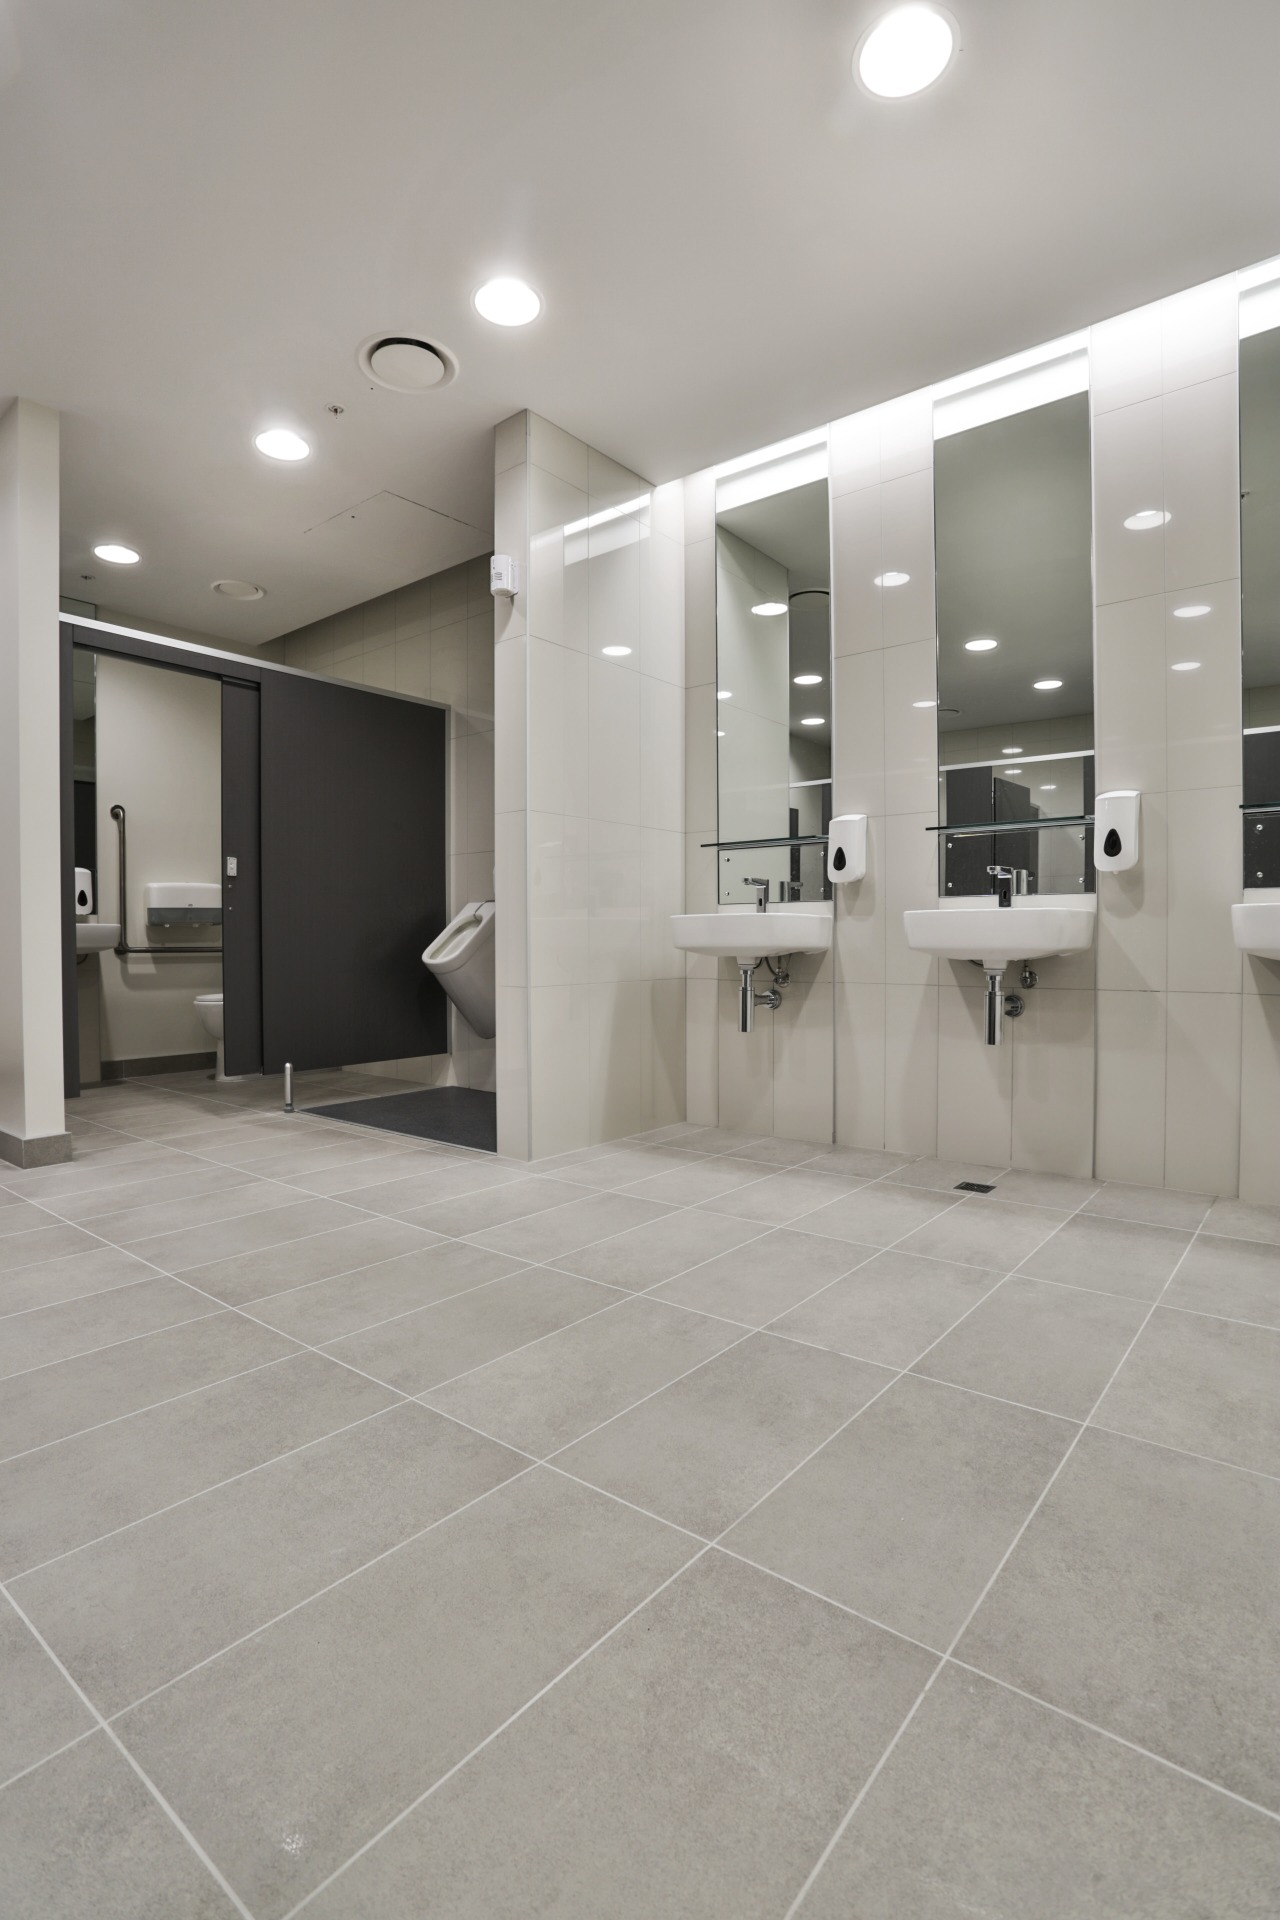 As part of the refined fit-out of the bathroom, floor, flooring, interior design, laminate flooring, lobby, real estate, tile, wood flooring, gray